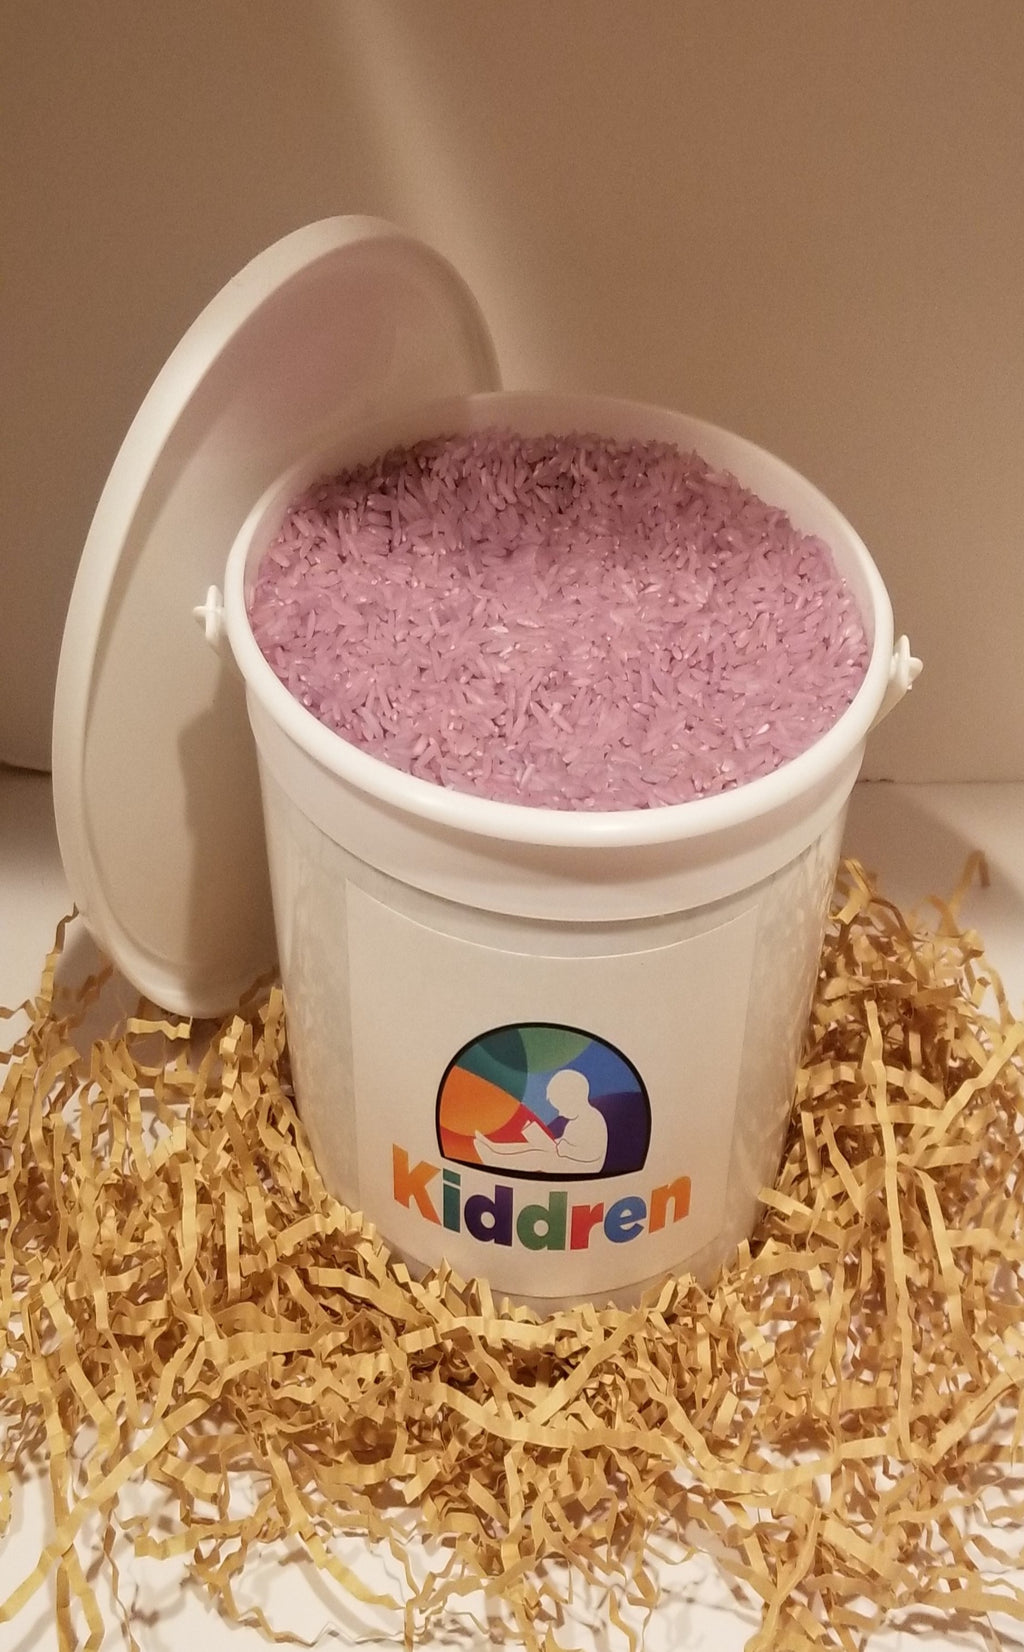 Bright Purple Colored Rice Bucket - Kiddren